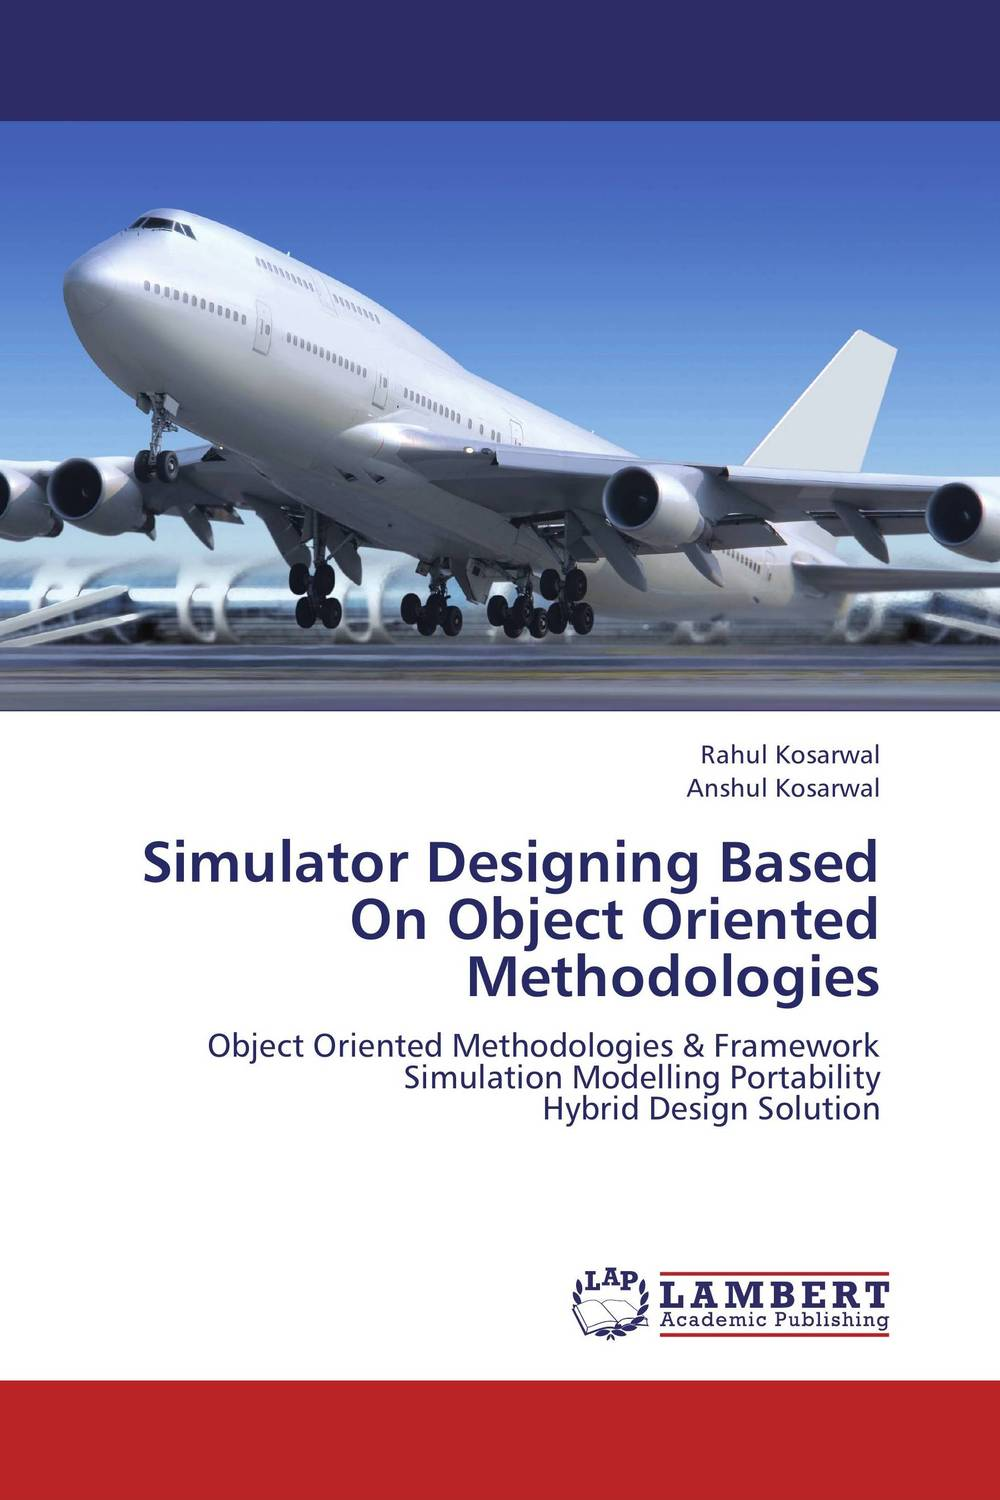 Simulator Designing Based On Object Oriented Methodologies